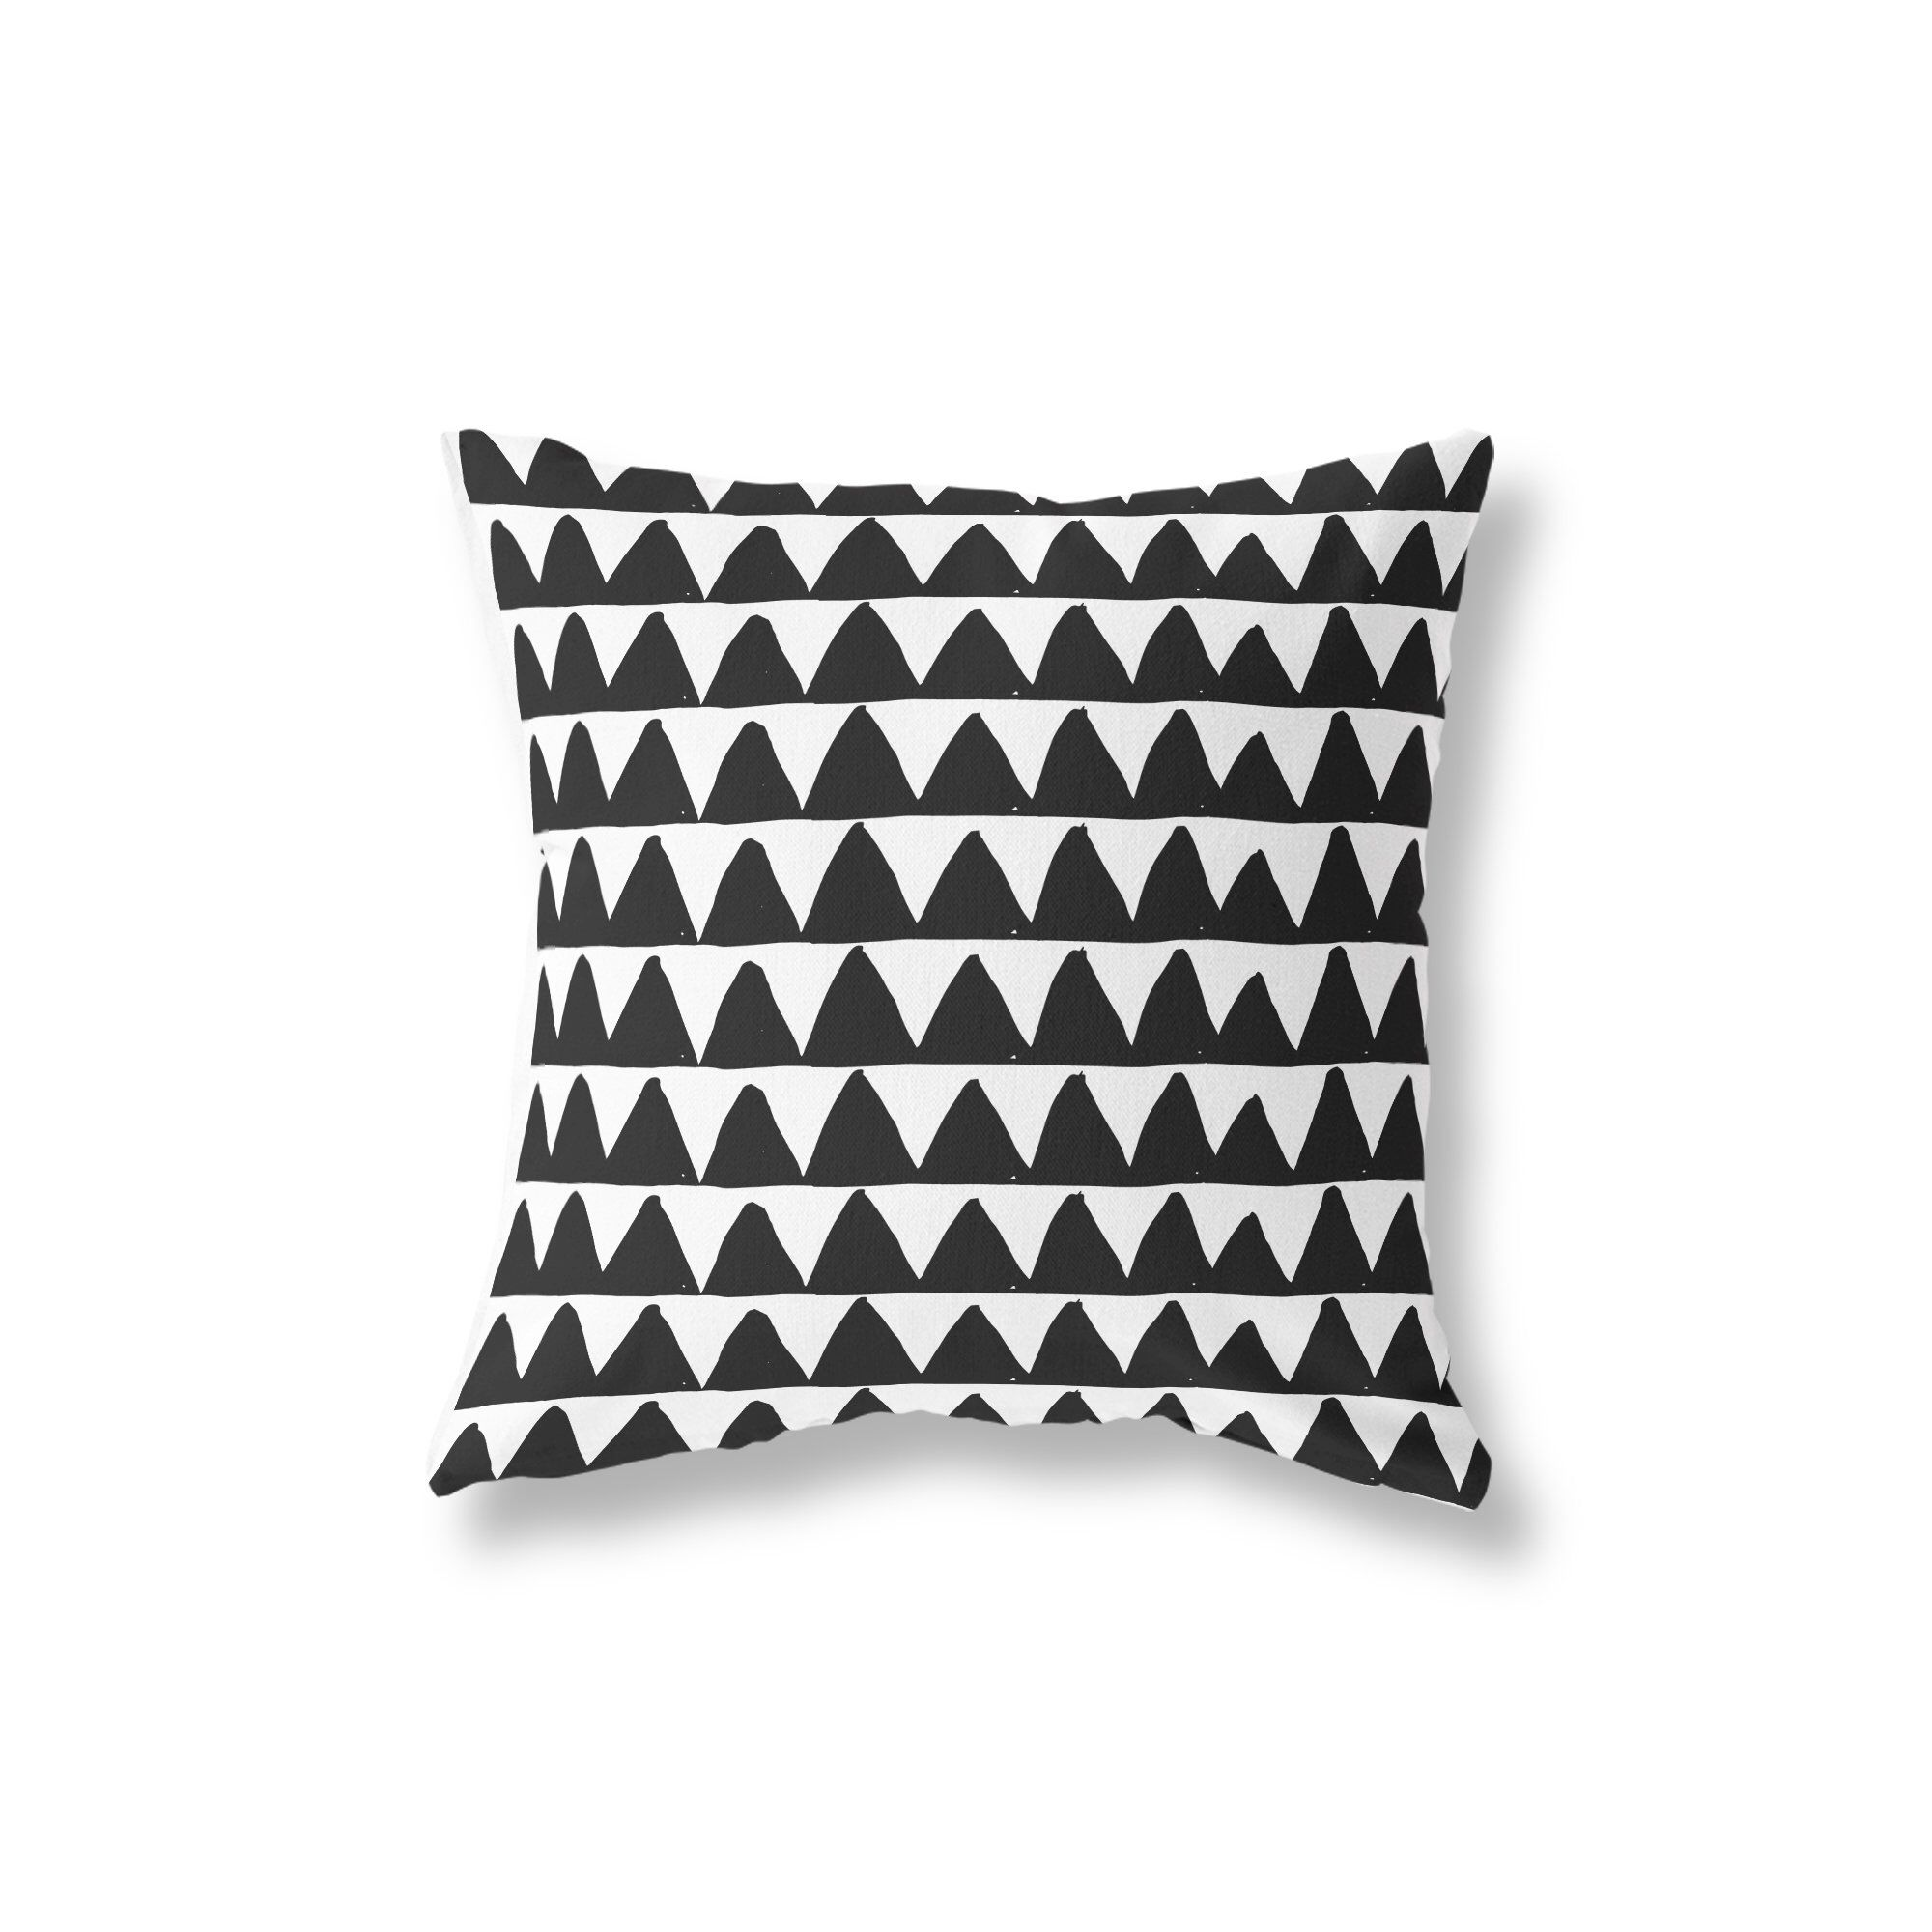 Black White Mix And Match Pillow Covers Accent Pillows Geometric Throw Pillows 14x14 16x16 18x18 20x20 26x26 Throw Pillows Geometric Throws White Pillow Covers